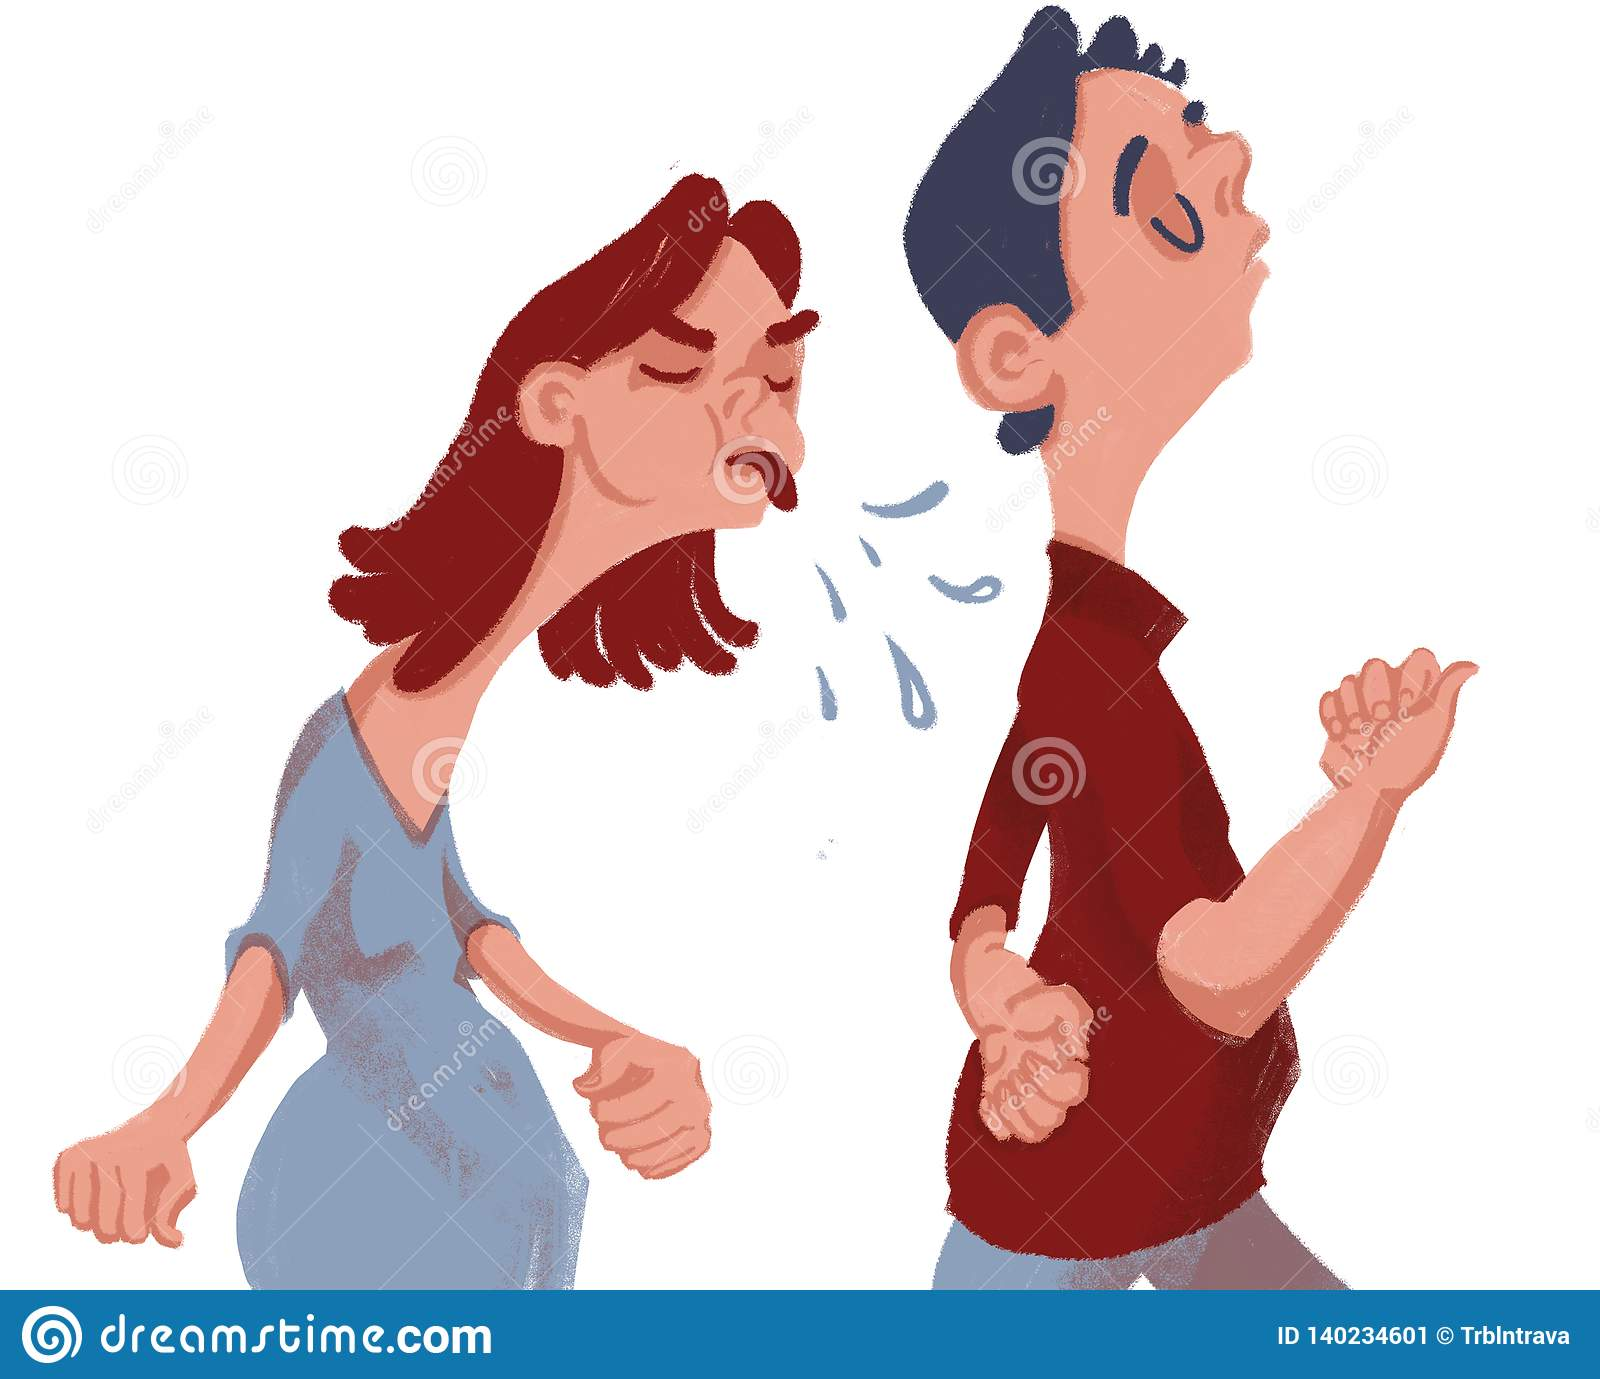 Quarrel. The girl is angry and takes offense at the guy